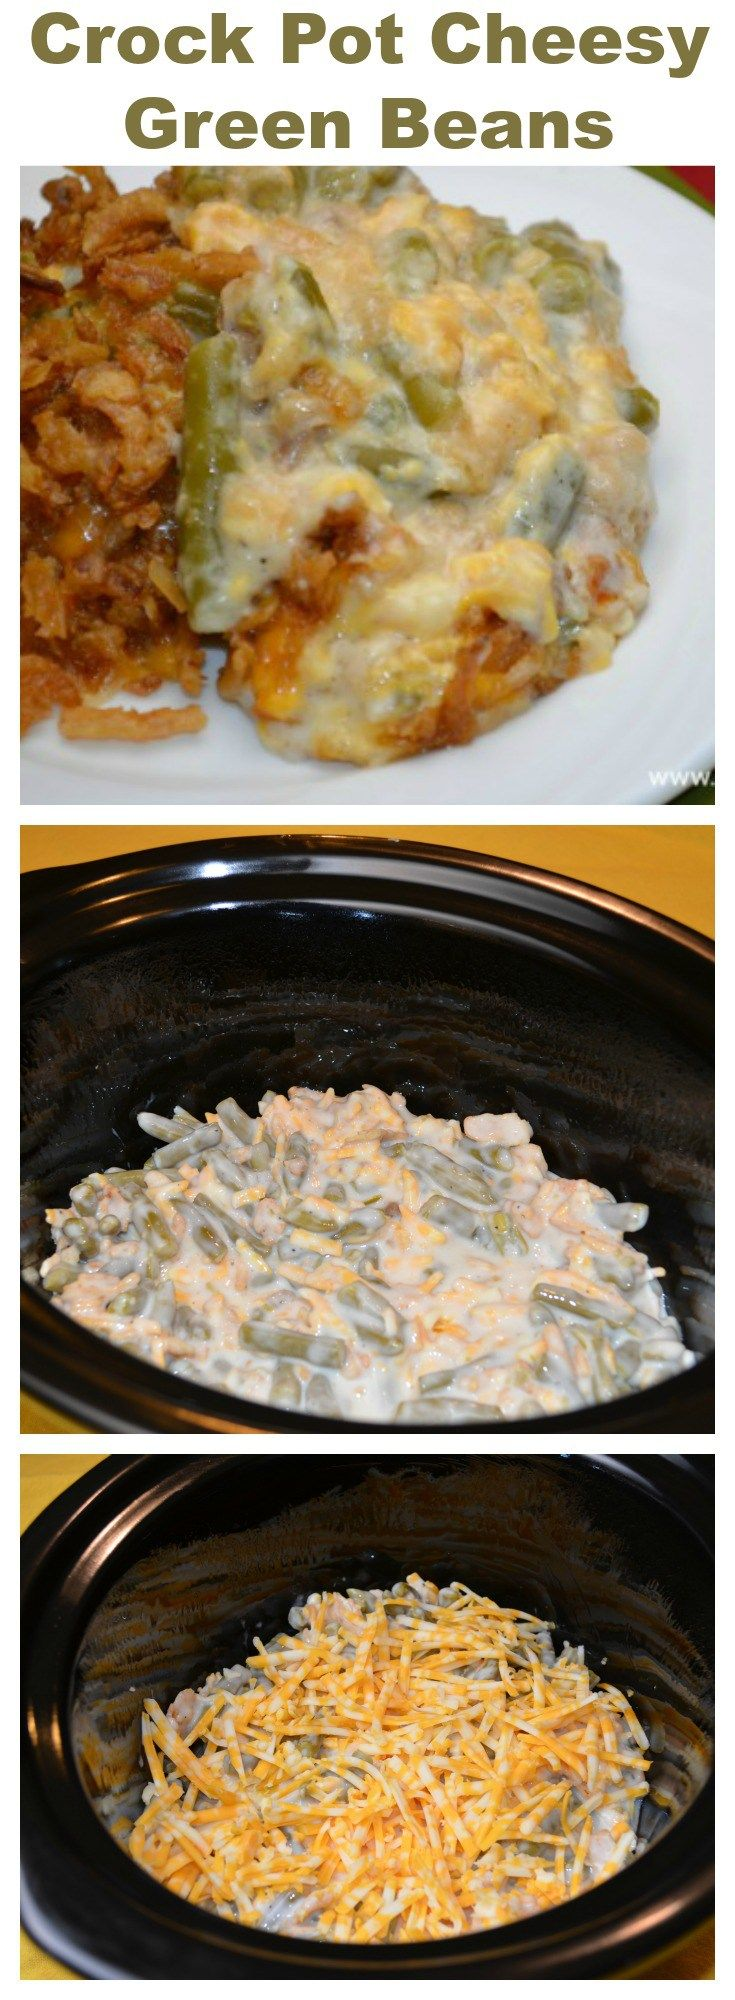 Crock Pot Cheesy Green Beans (use low carb/gluten free CofM soup sub, French fried onions or use caramelized onions instead; low 3-3.5 hrs or high 2-2.5hrs)